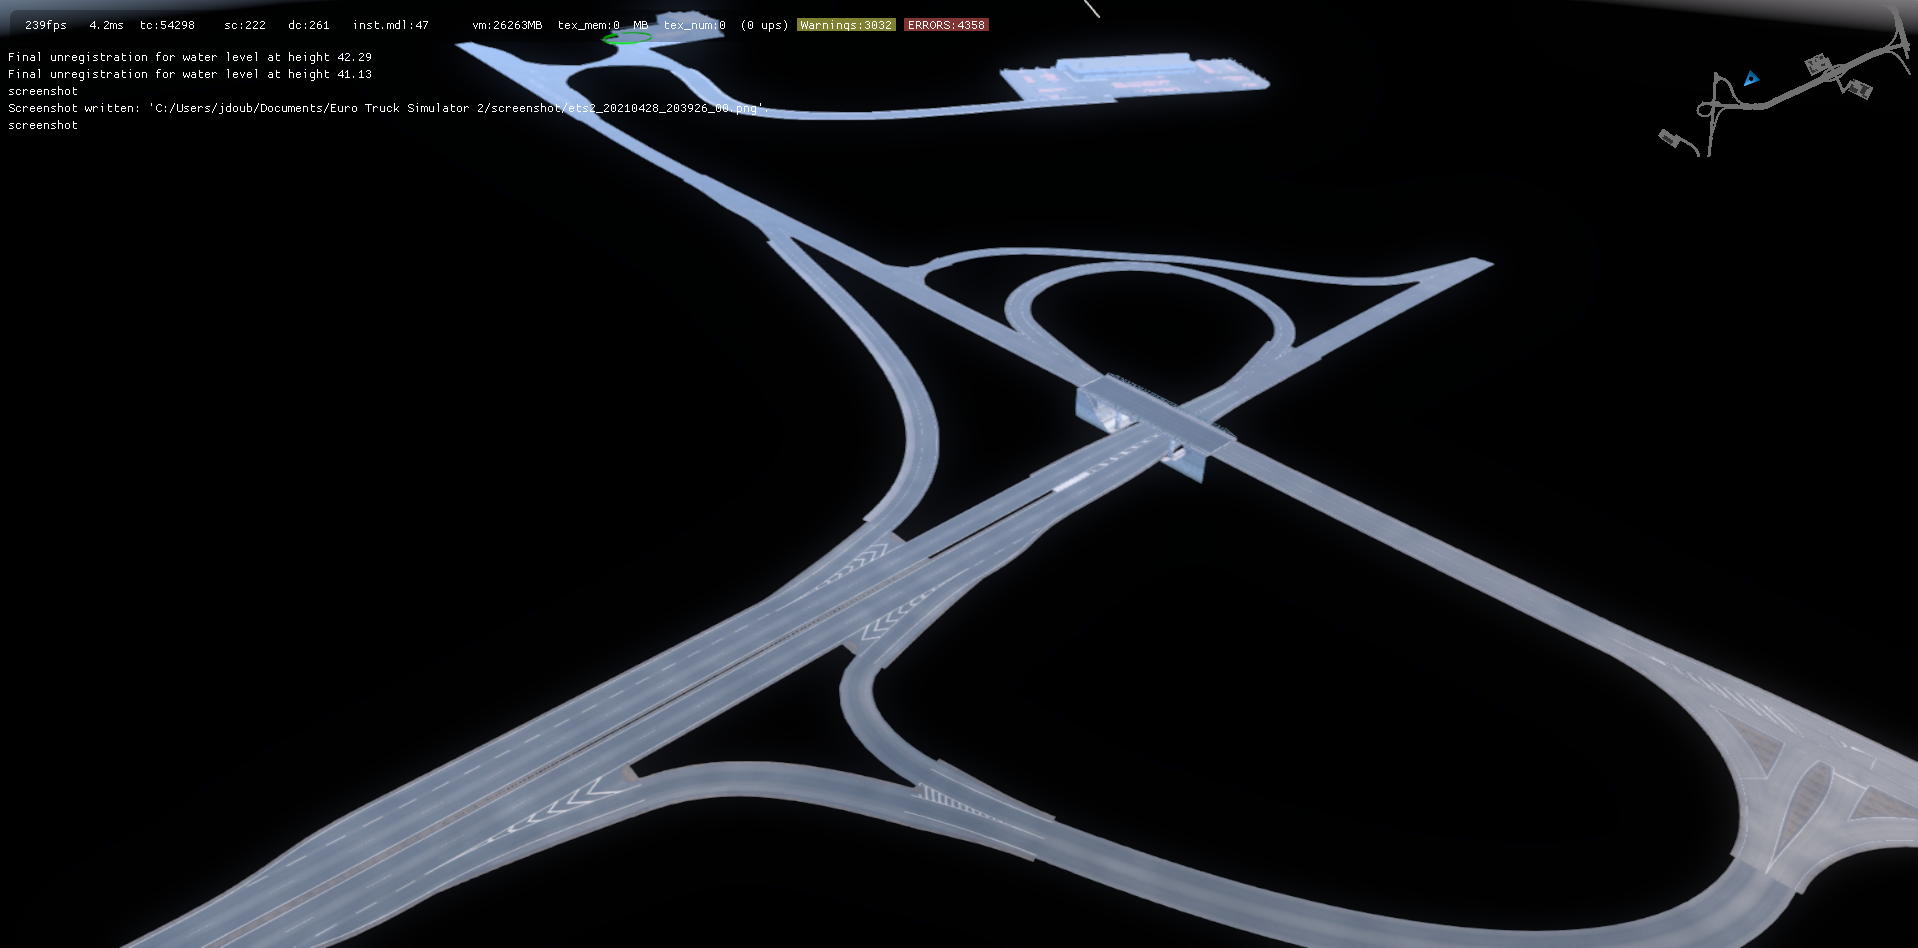 ets2_20210428_203944_00.png